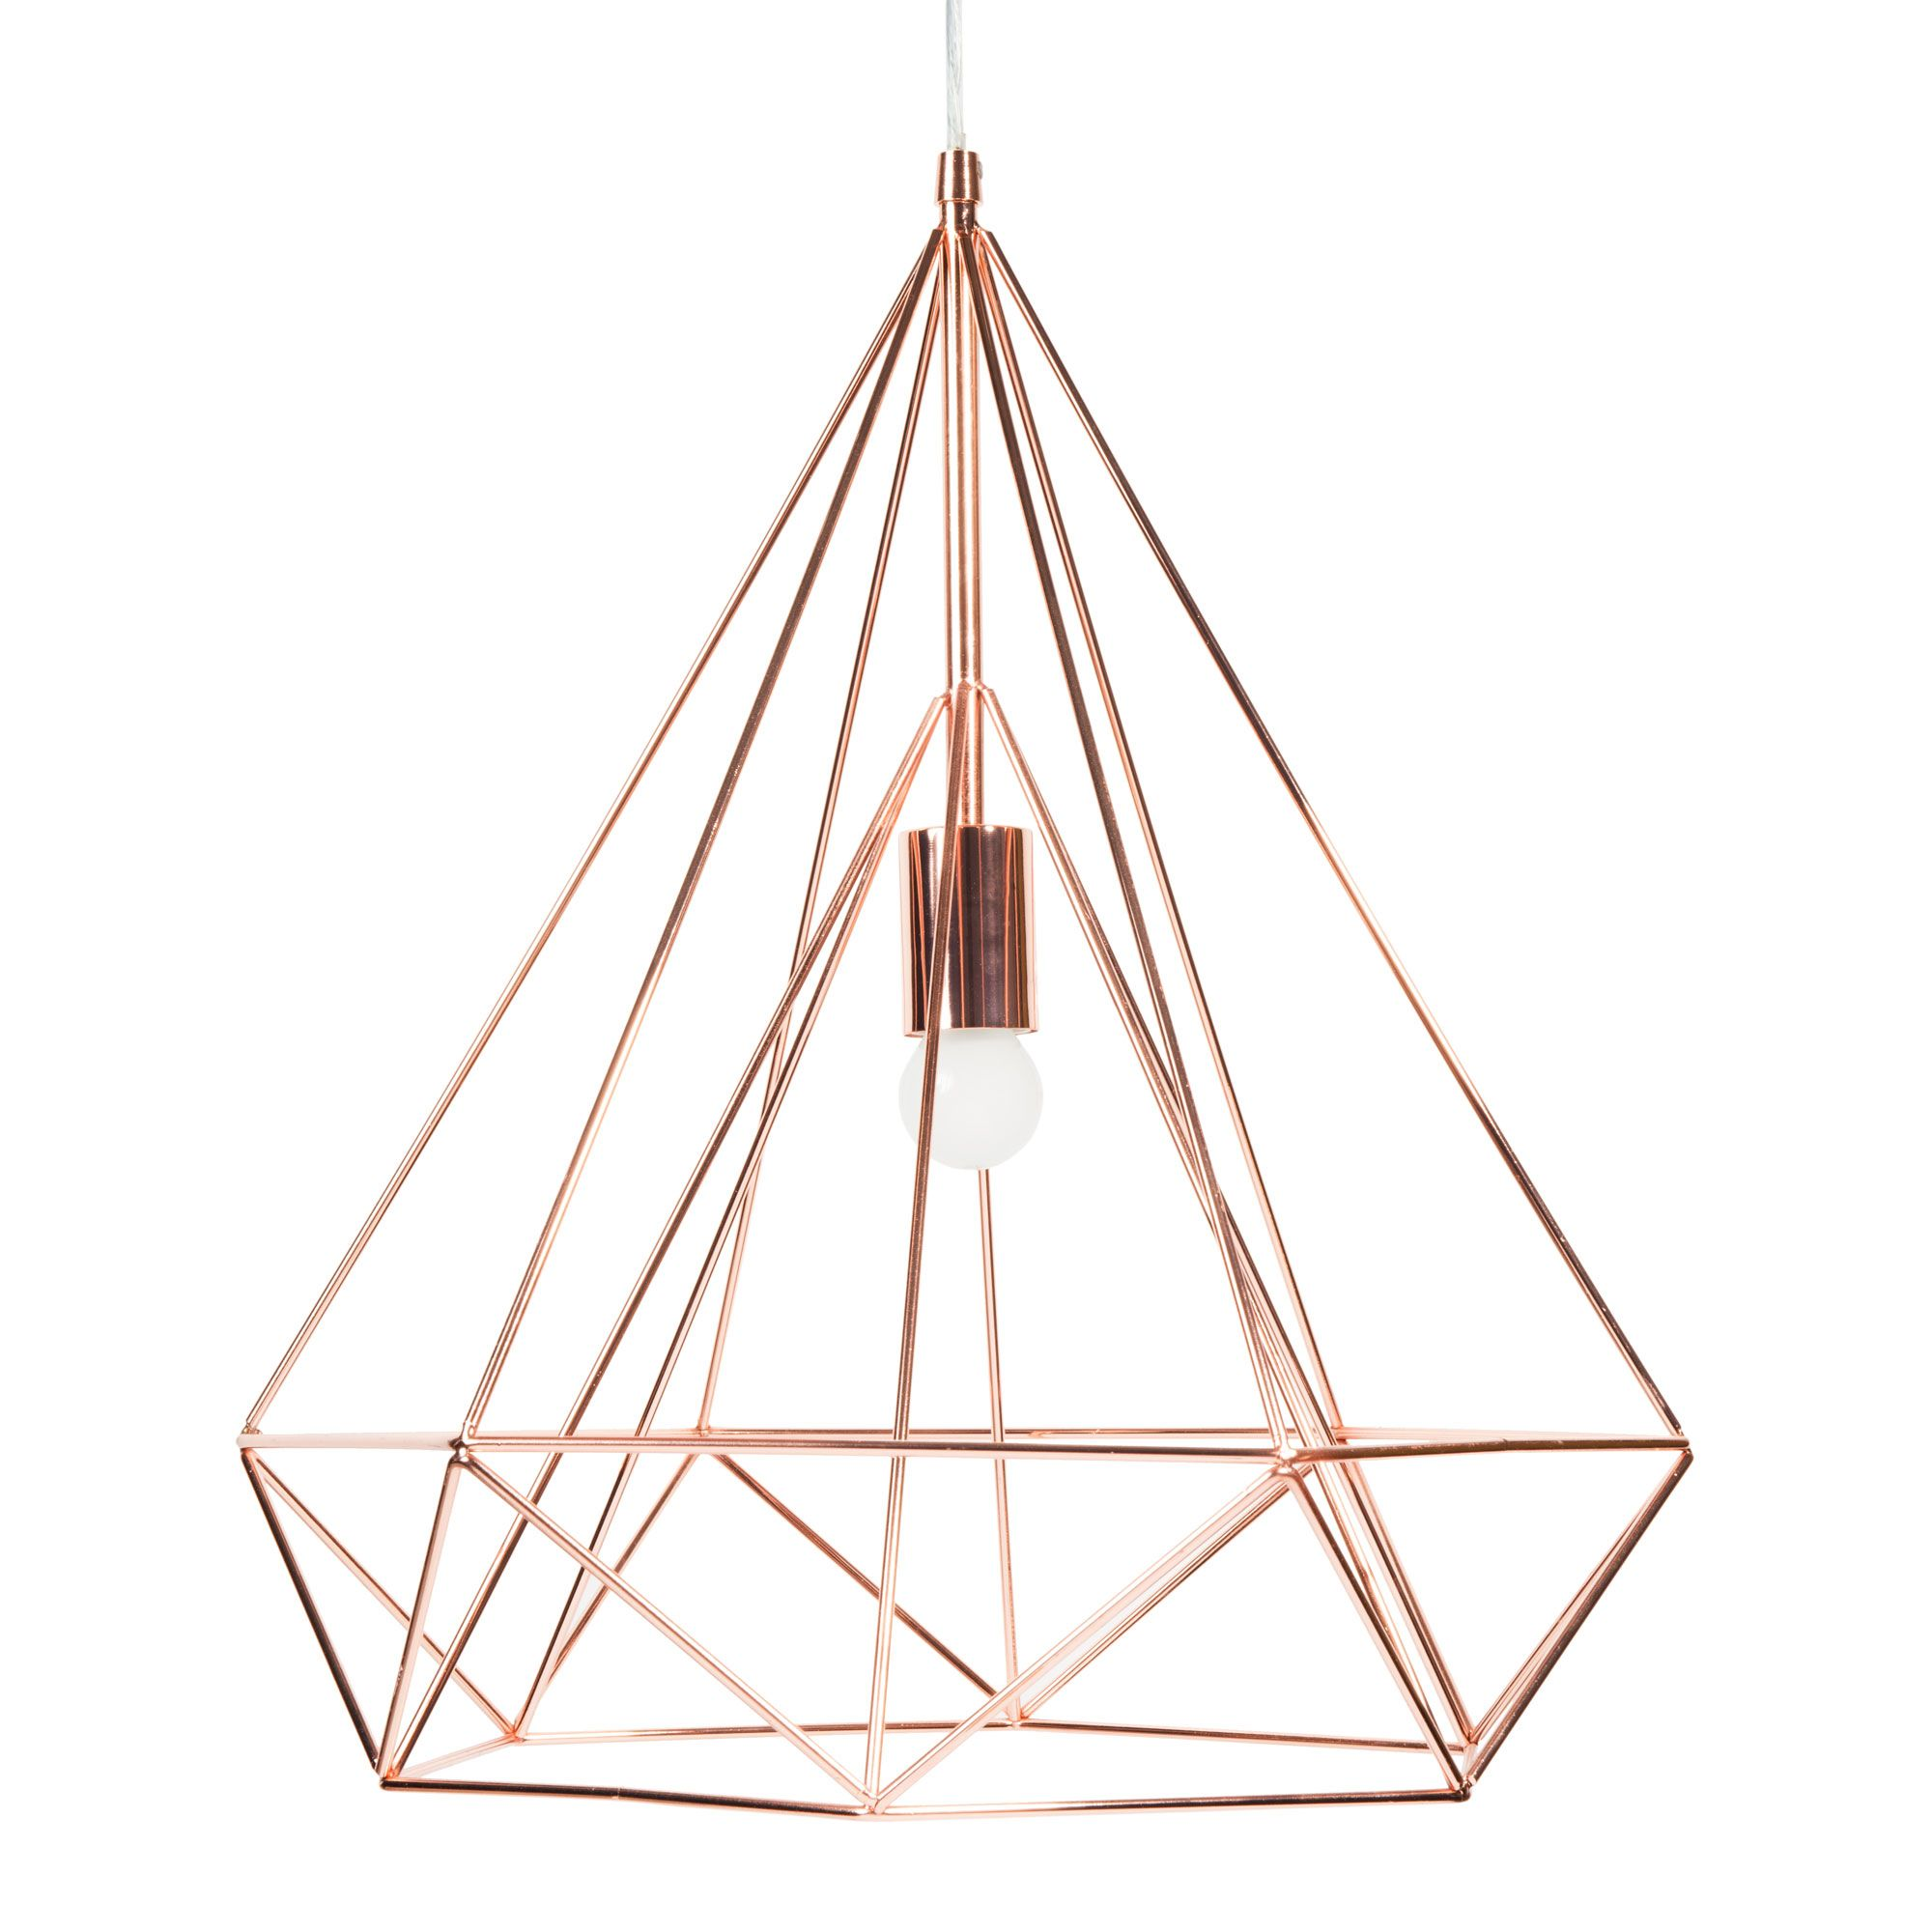 Suspension cuivre en m tal d 45 cm diamond copper - Suspension luminaire en cuivre ...